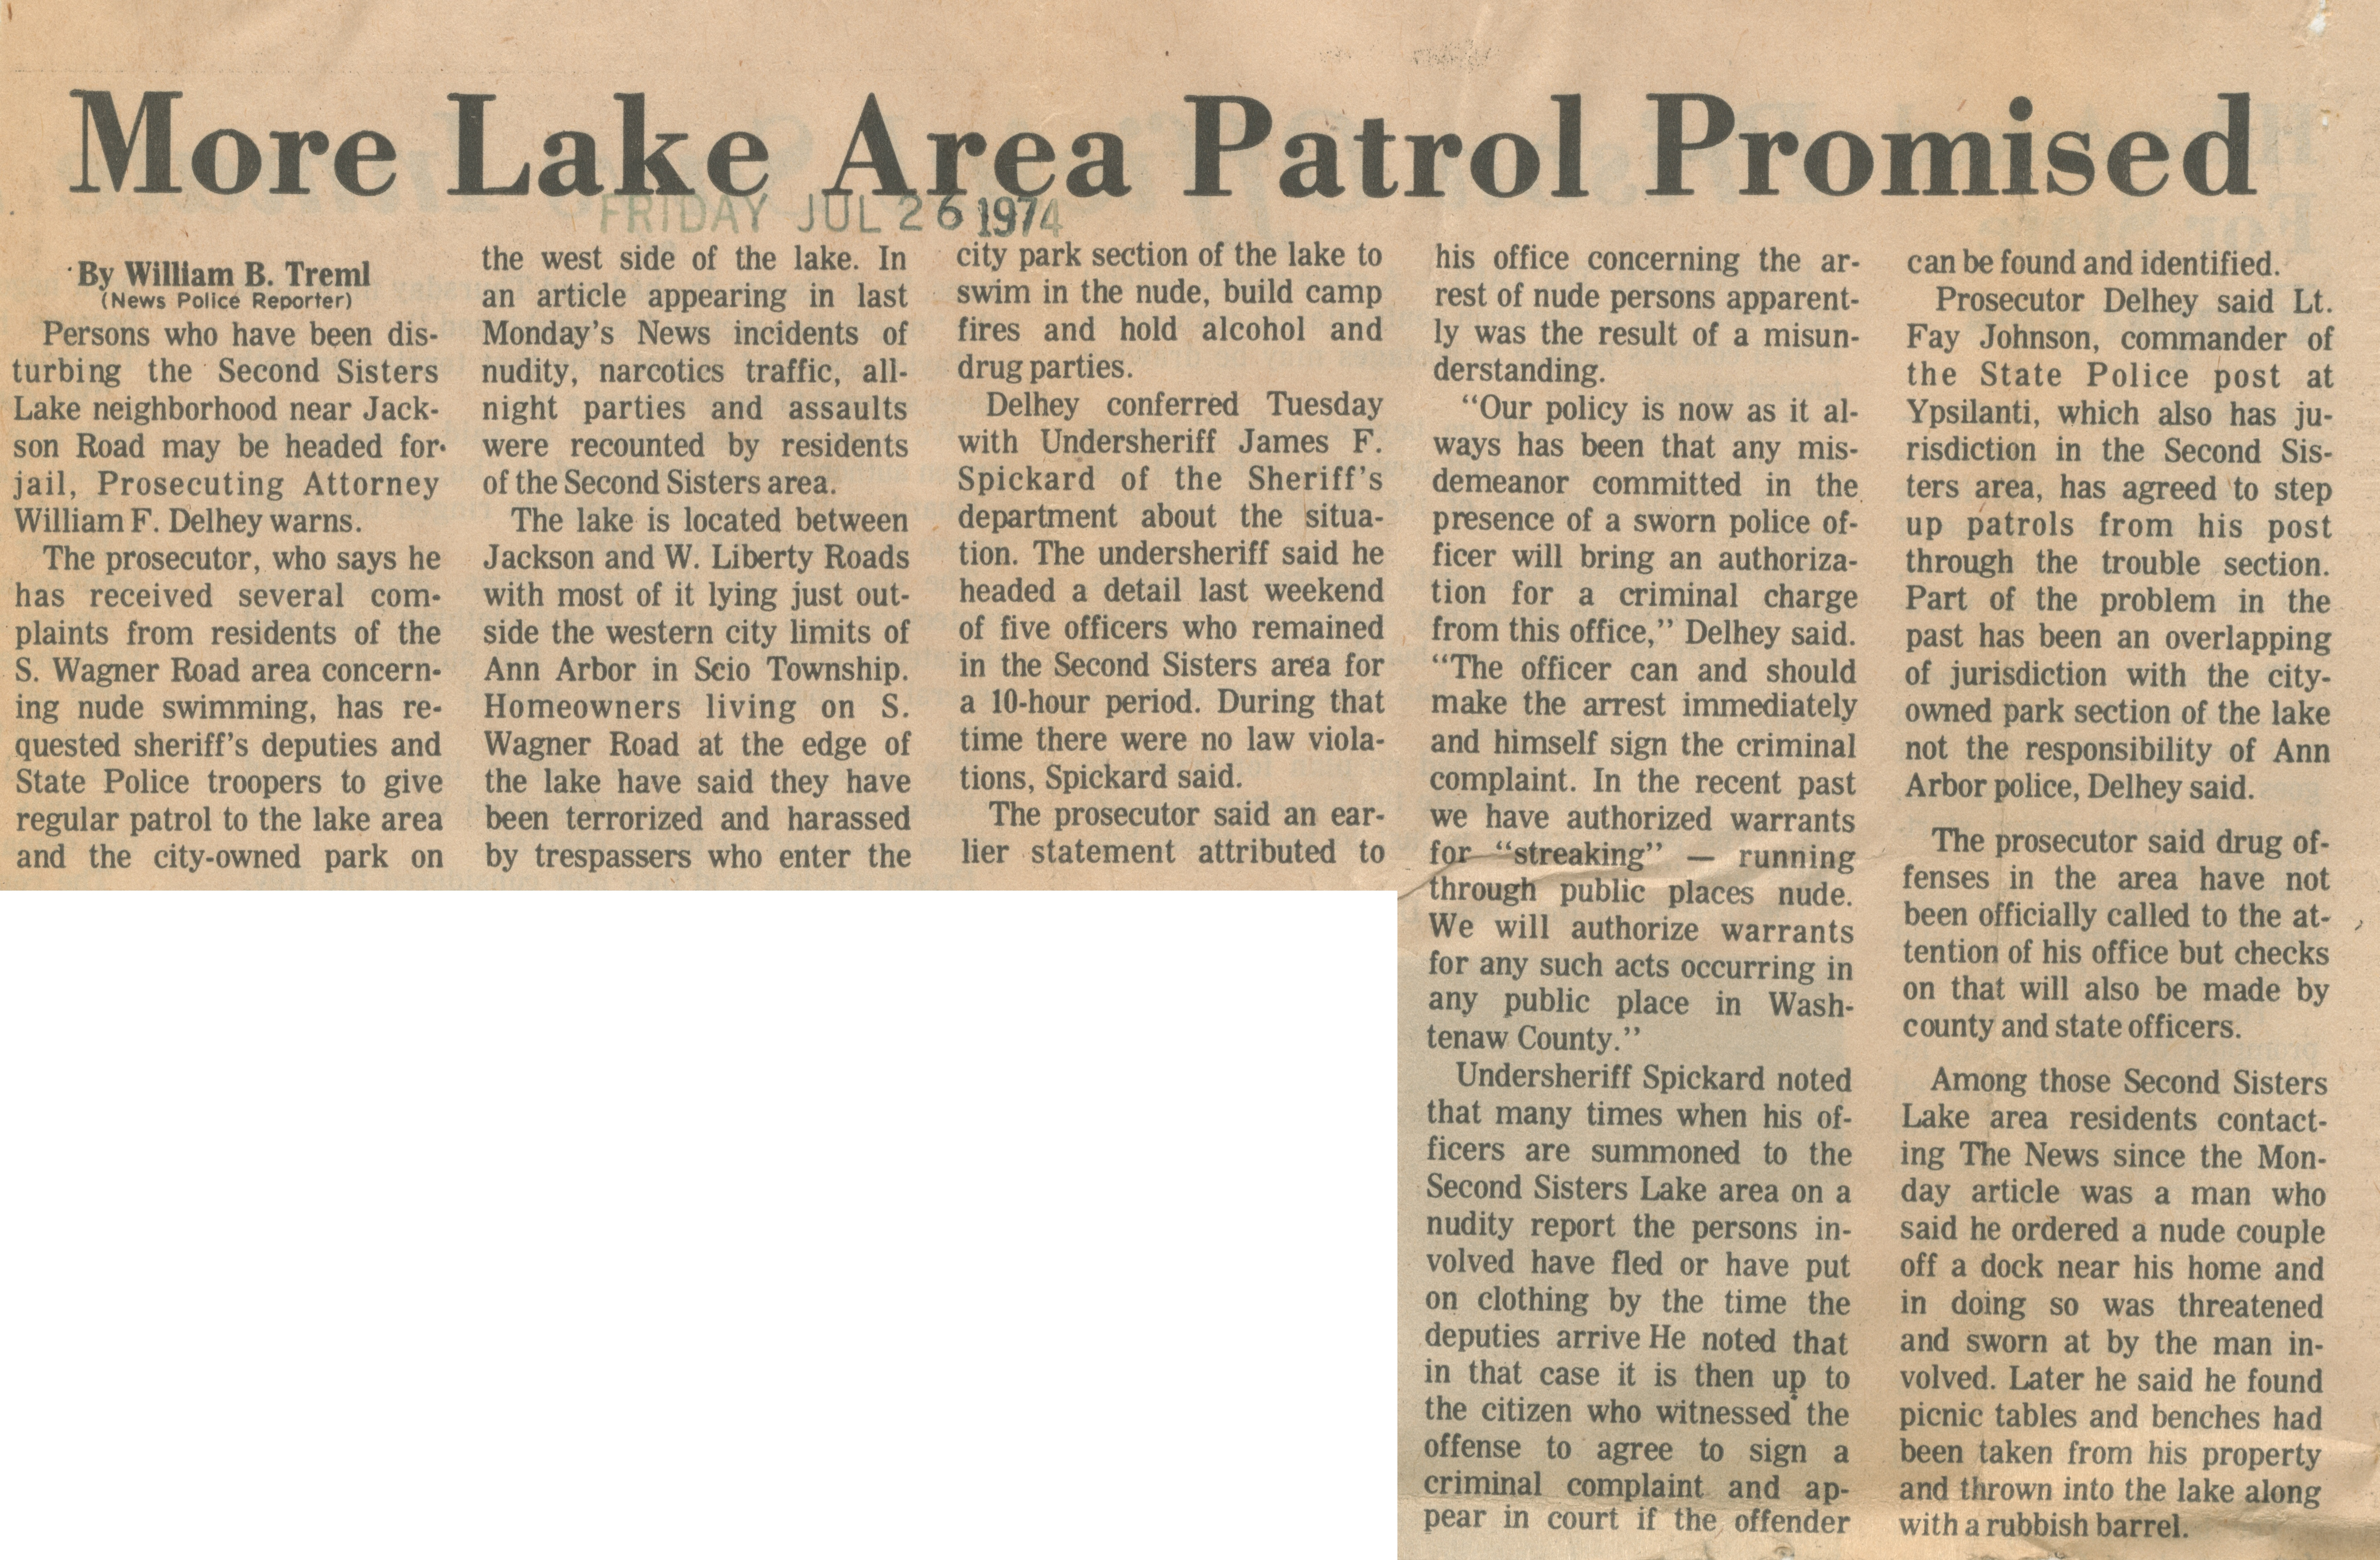 More Lake Area Patrol Promised image